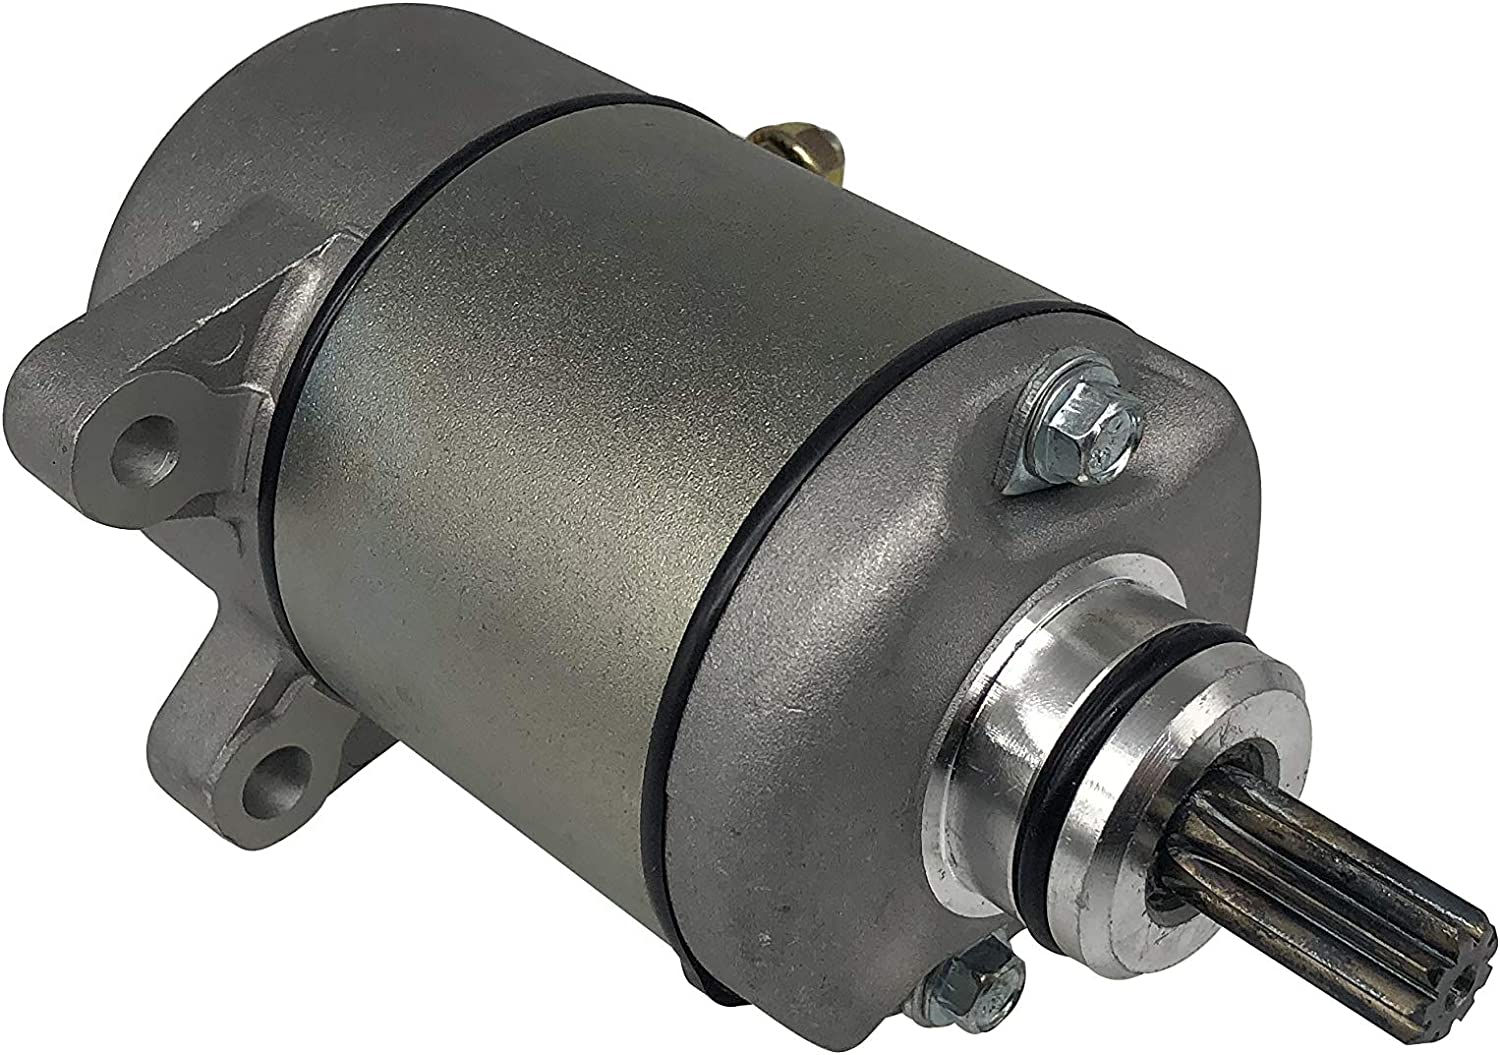 Starter Motor for 2000-2006 Honda 350 Four Trax FourTrax Rancher TRX350FE TRX350FM TRX350TE TRX350TM with Replace OE # 410-54038 18607 HA-116 495753 2-2764-MT 31200-HN5-671 31200-HN5-A81